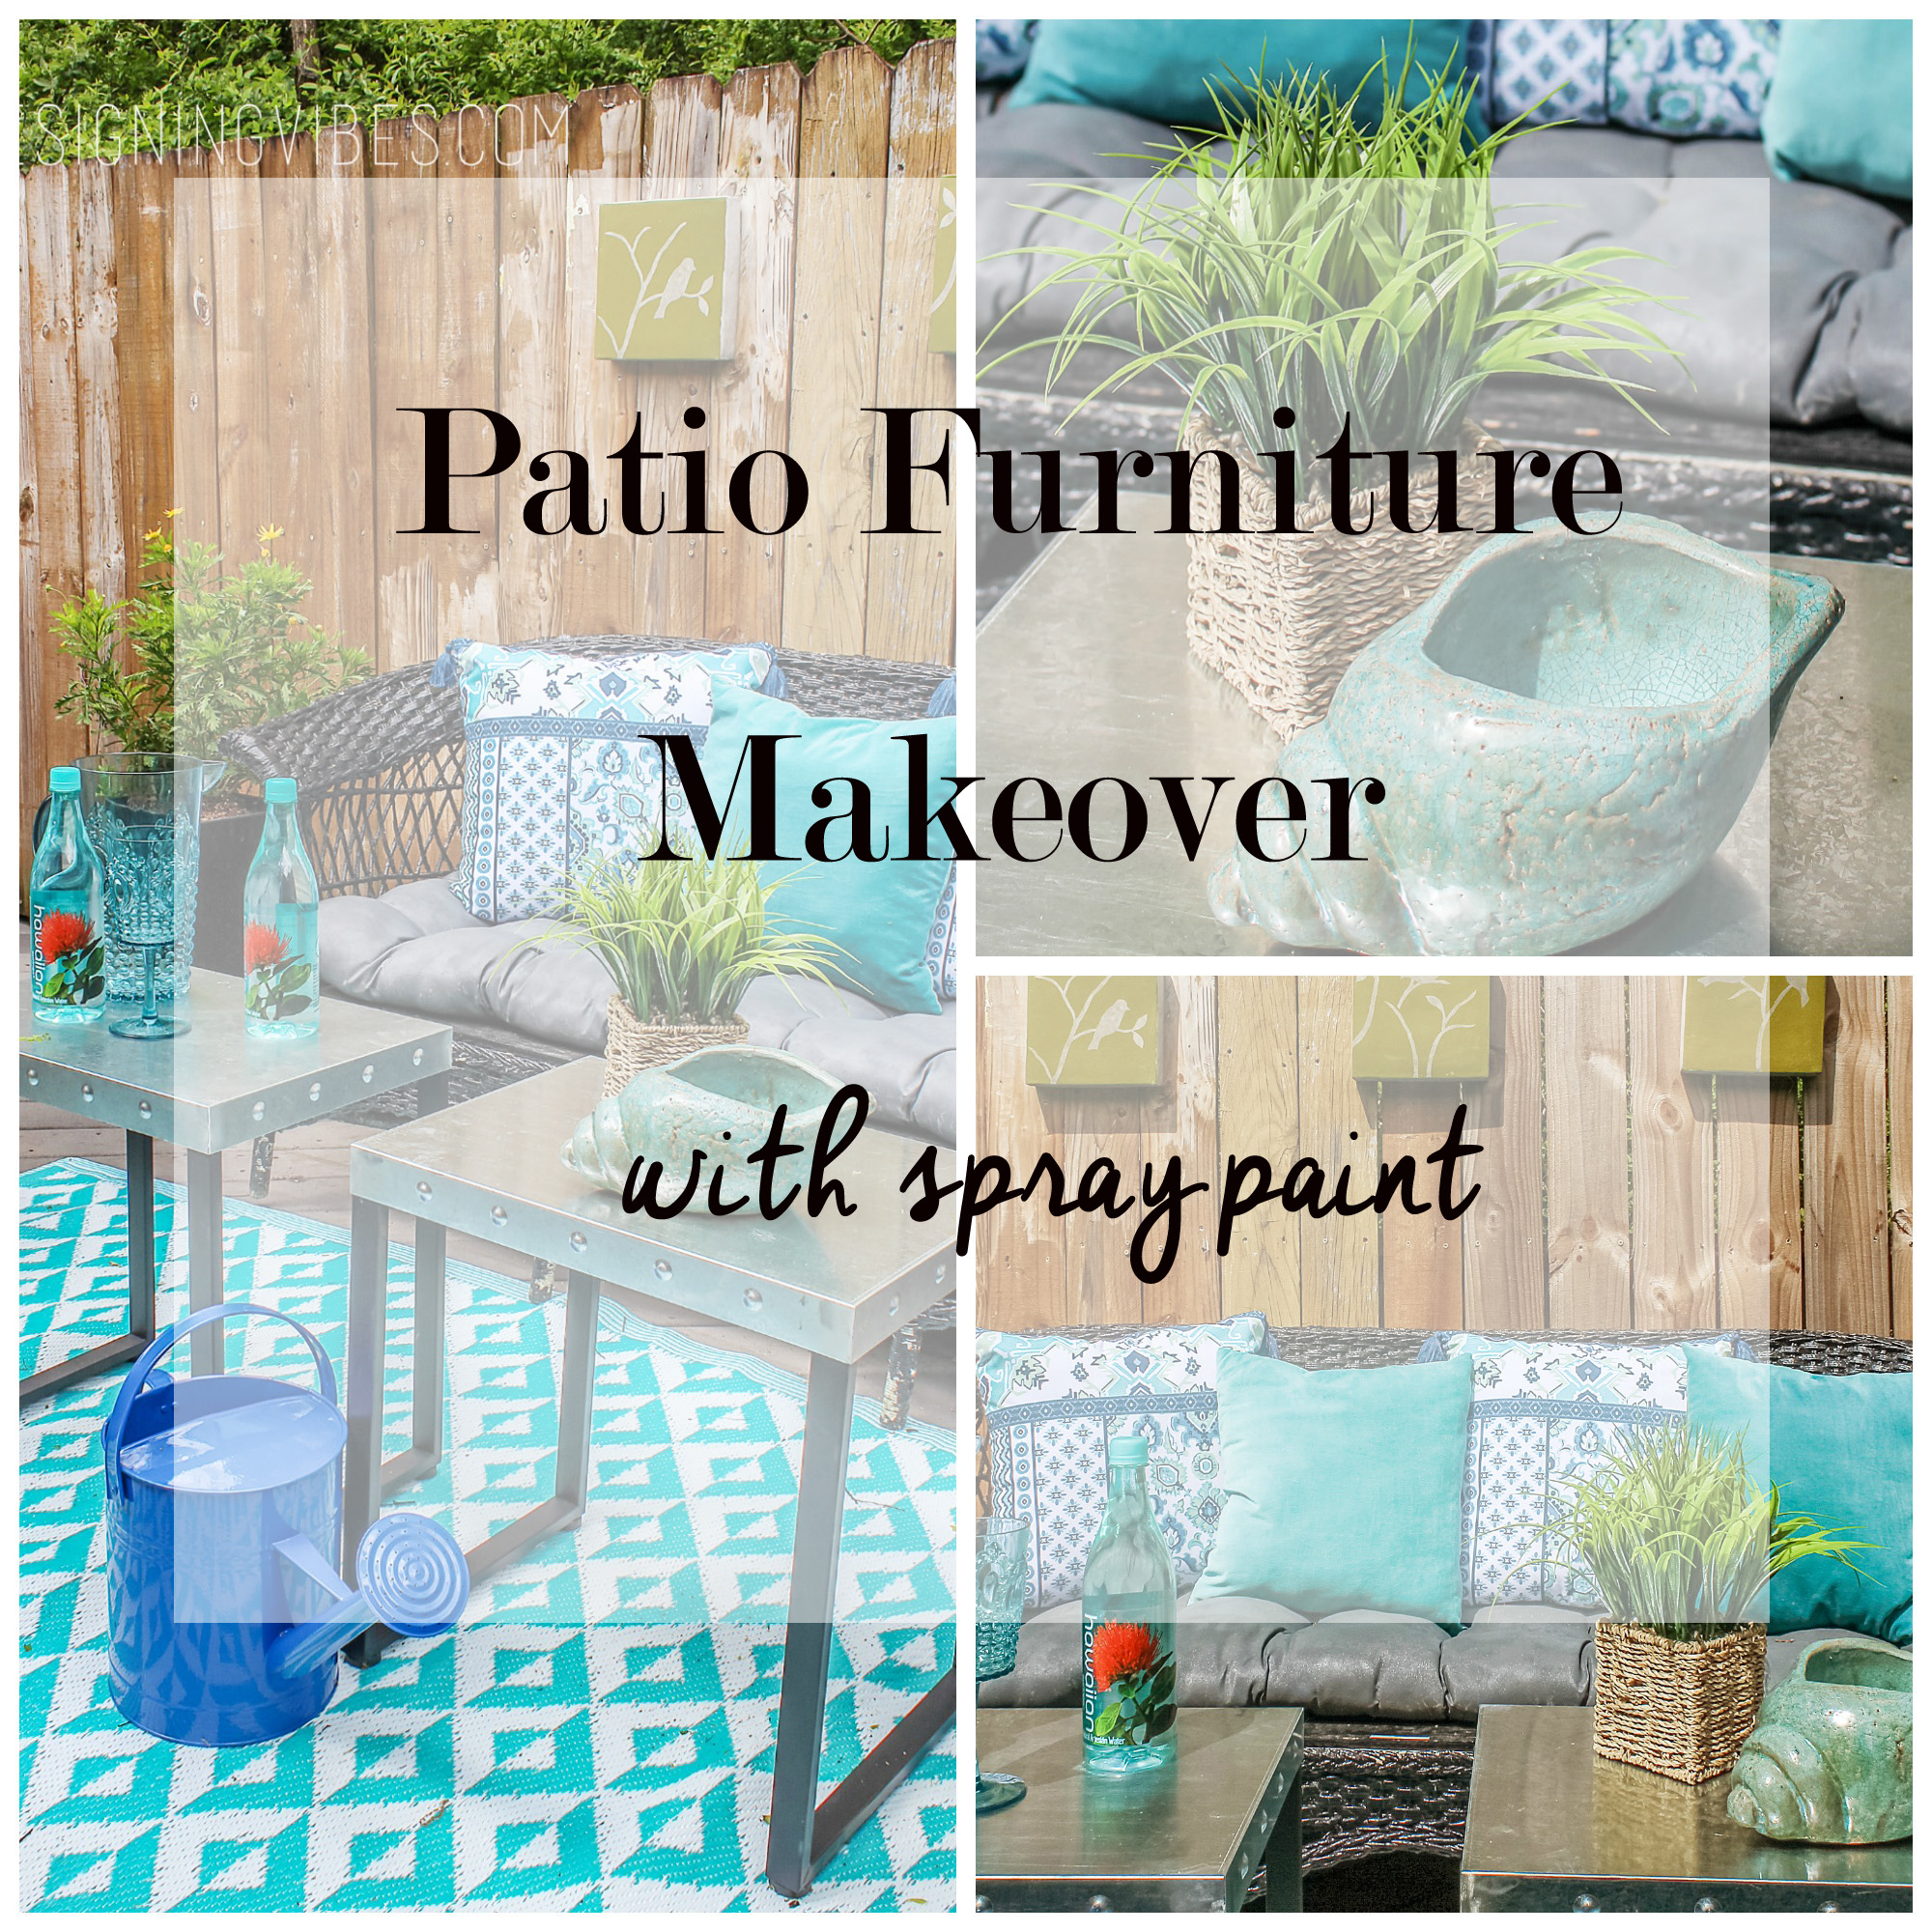 Spray Paint Fixes Everything   DIY Patio Furniture Makeover   Designing  Vibes   Interior Design, DIY And Lifestyle Part 79